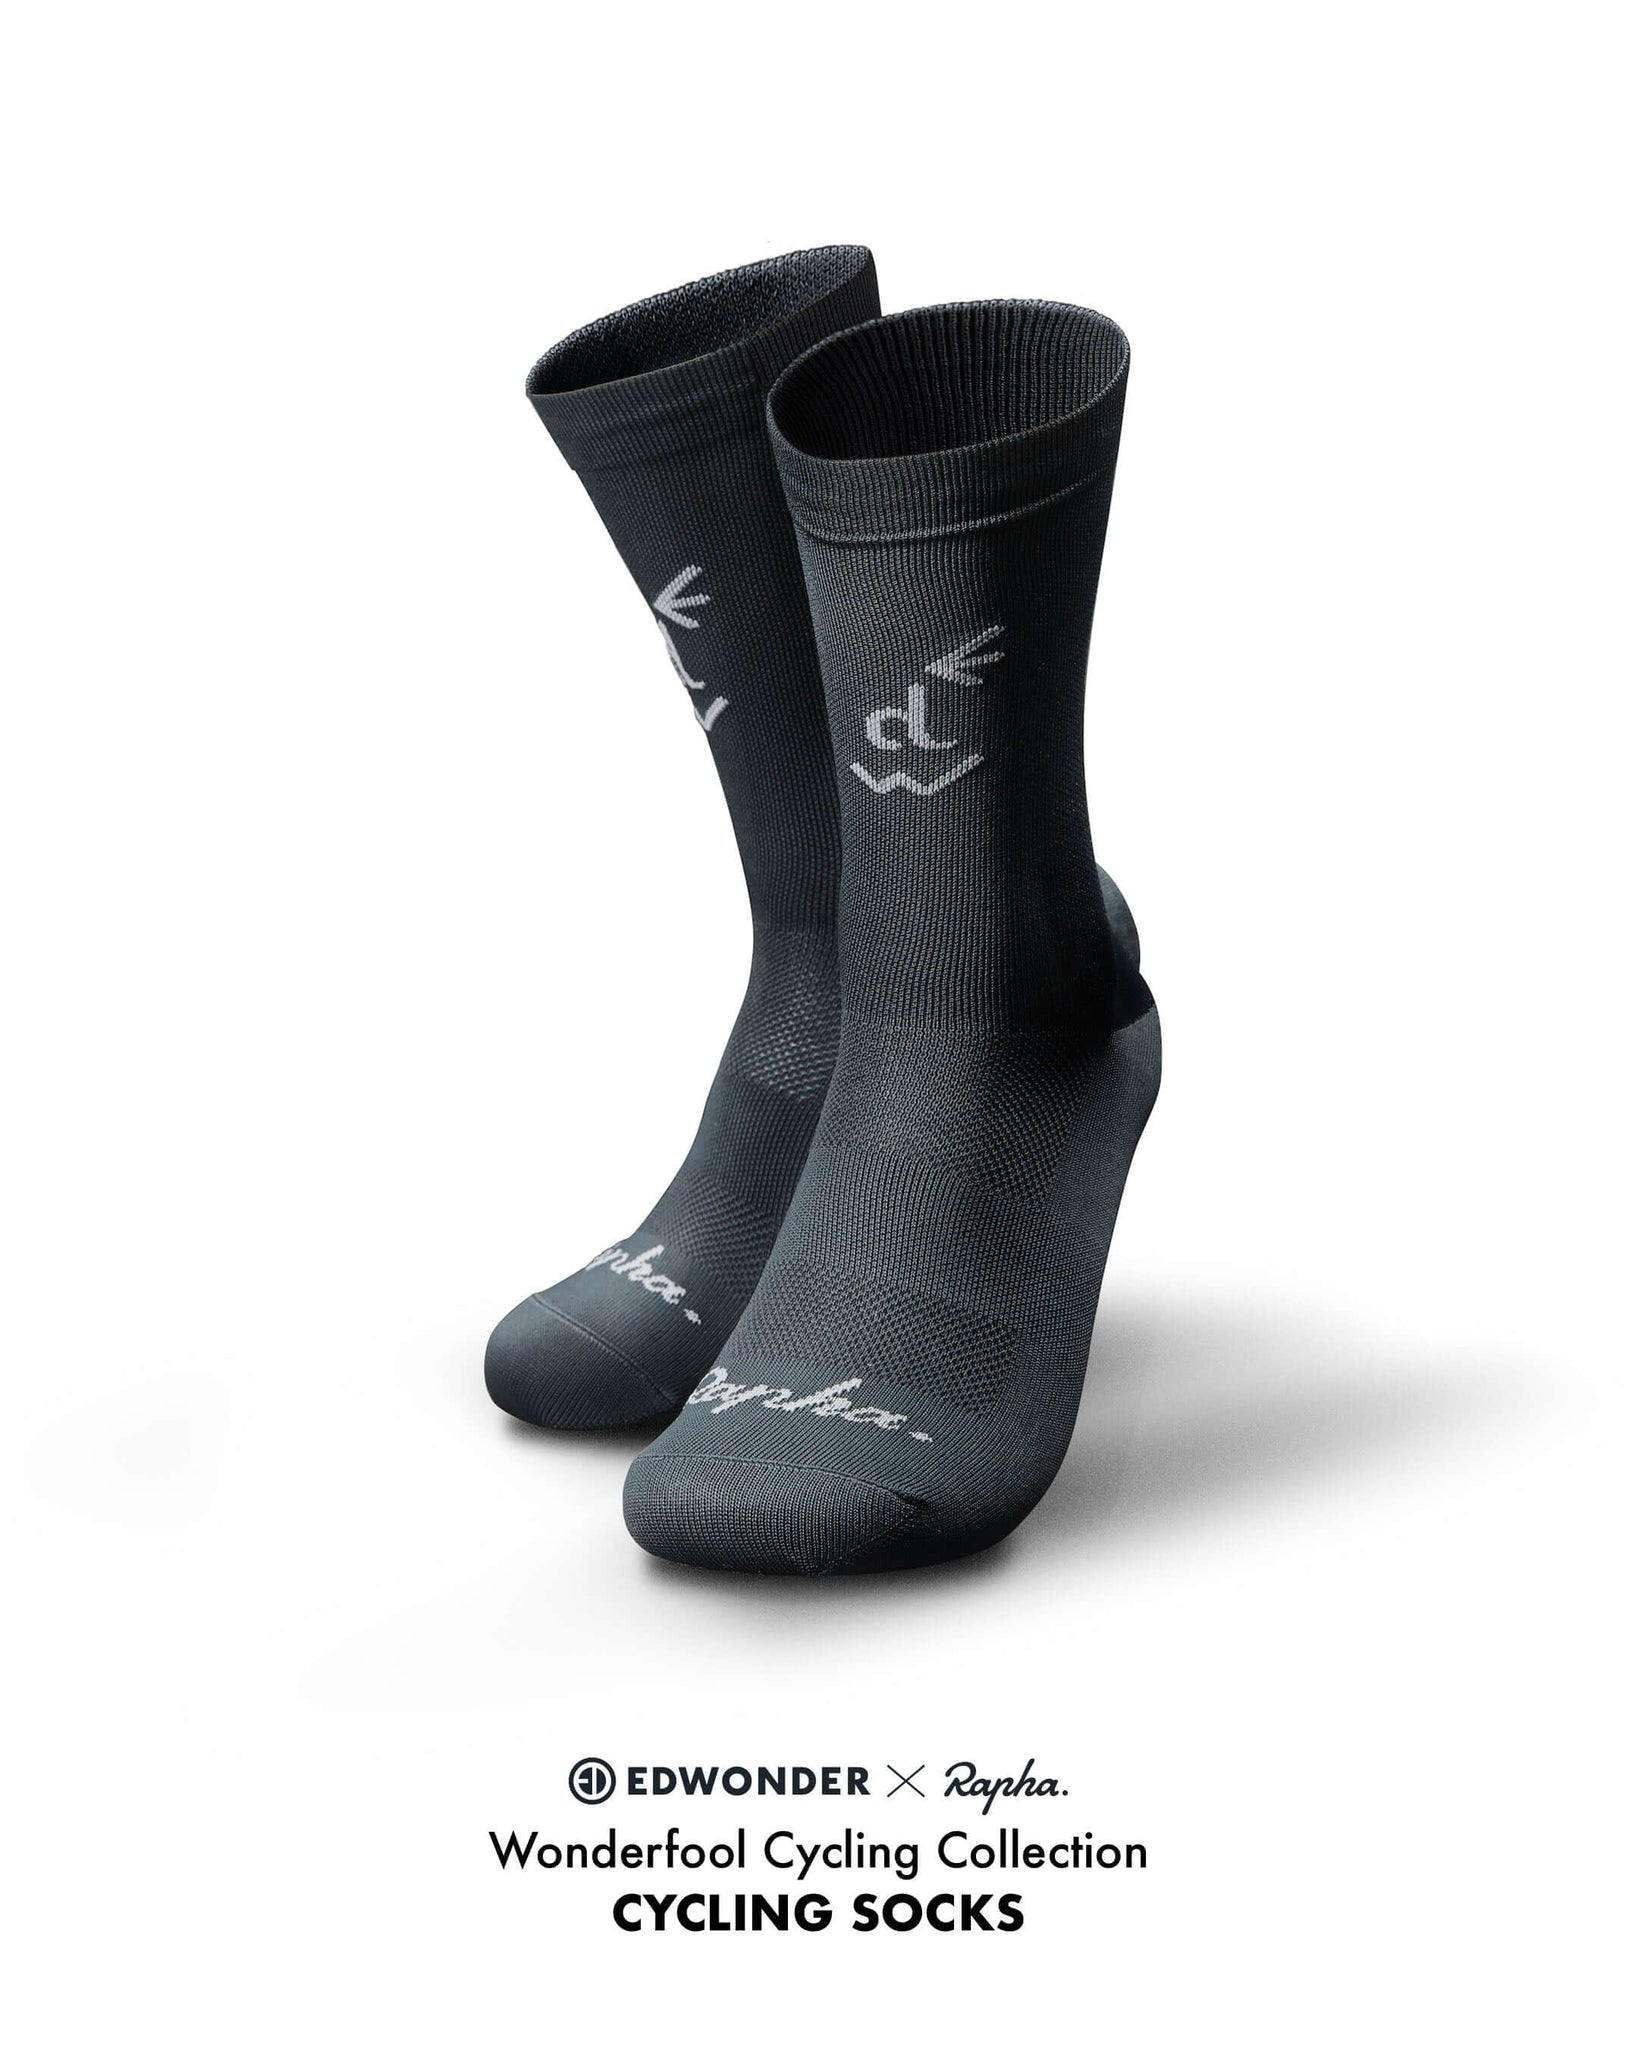 EdWonder X Rapha | Wonderfool Socks [LIMITED EDITION]